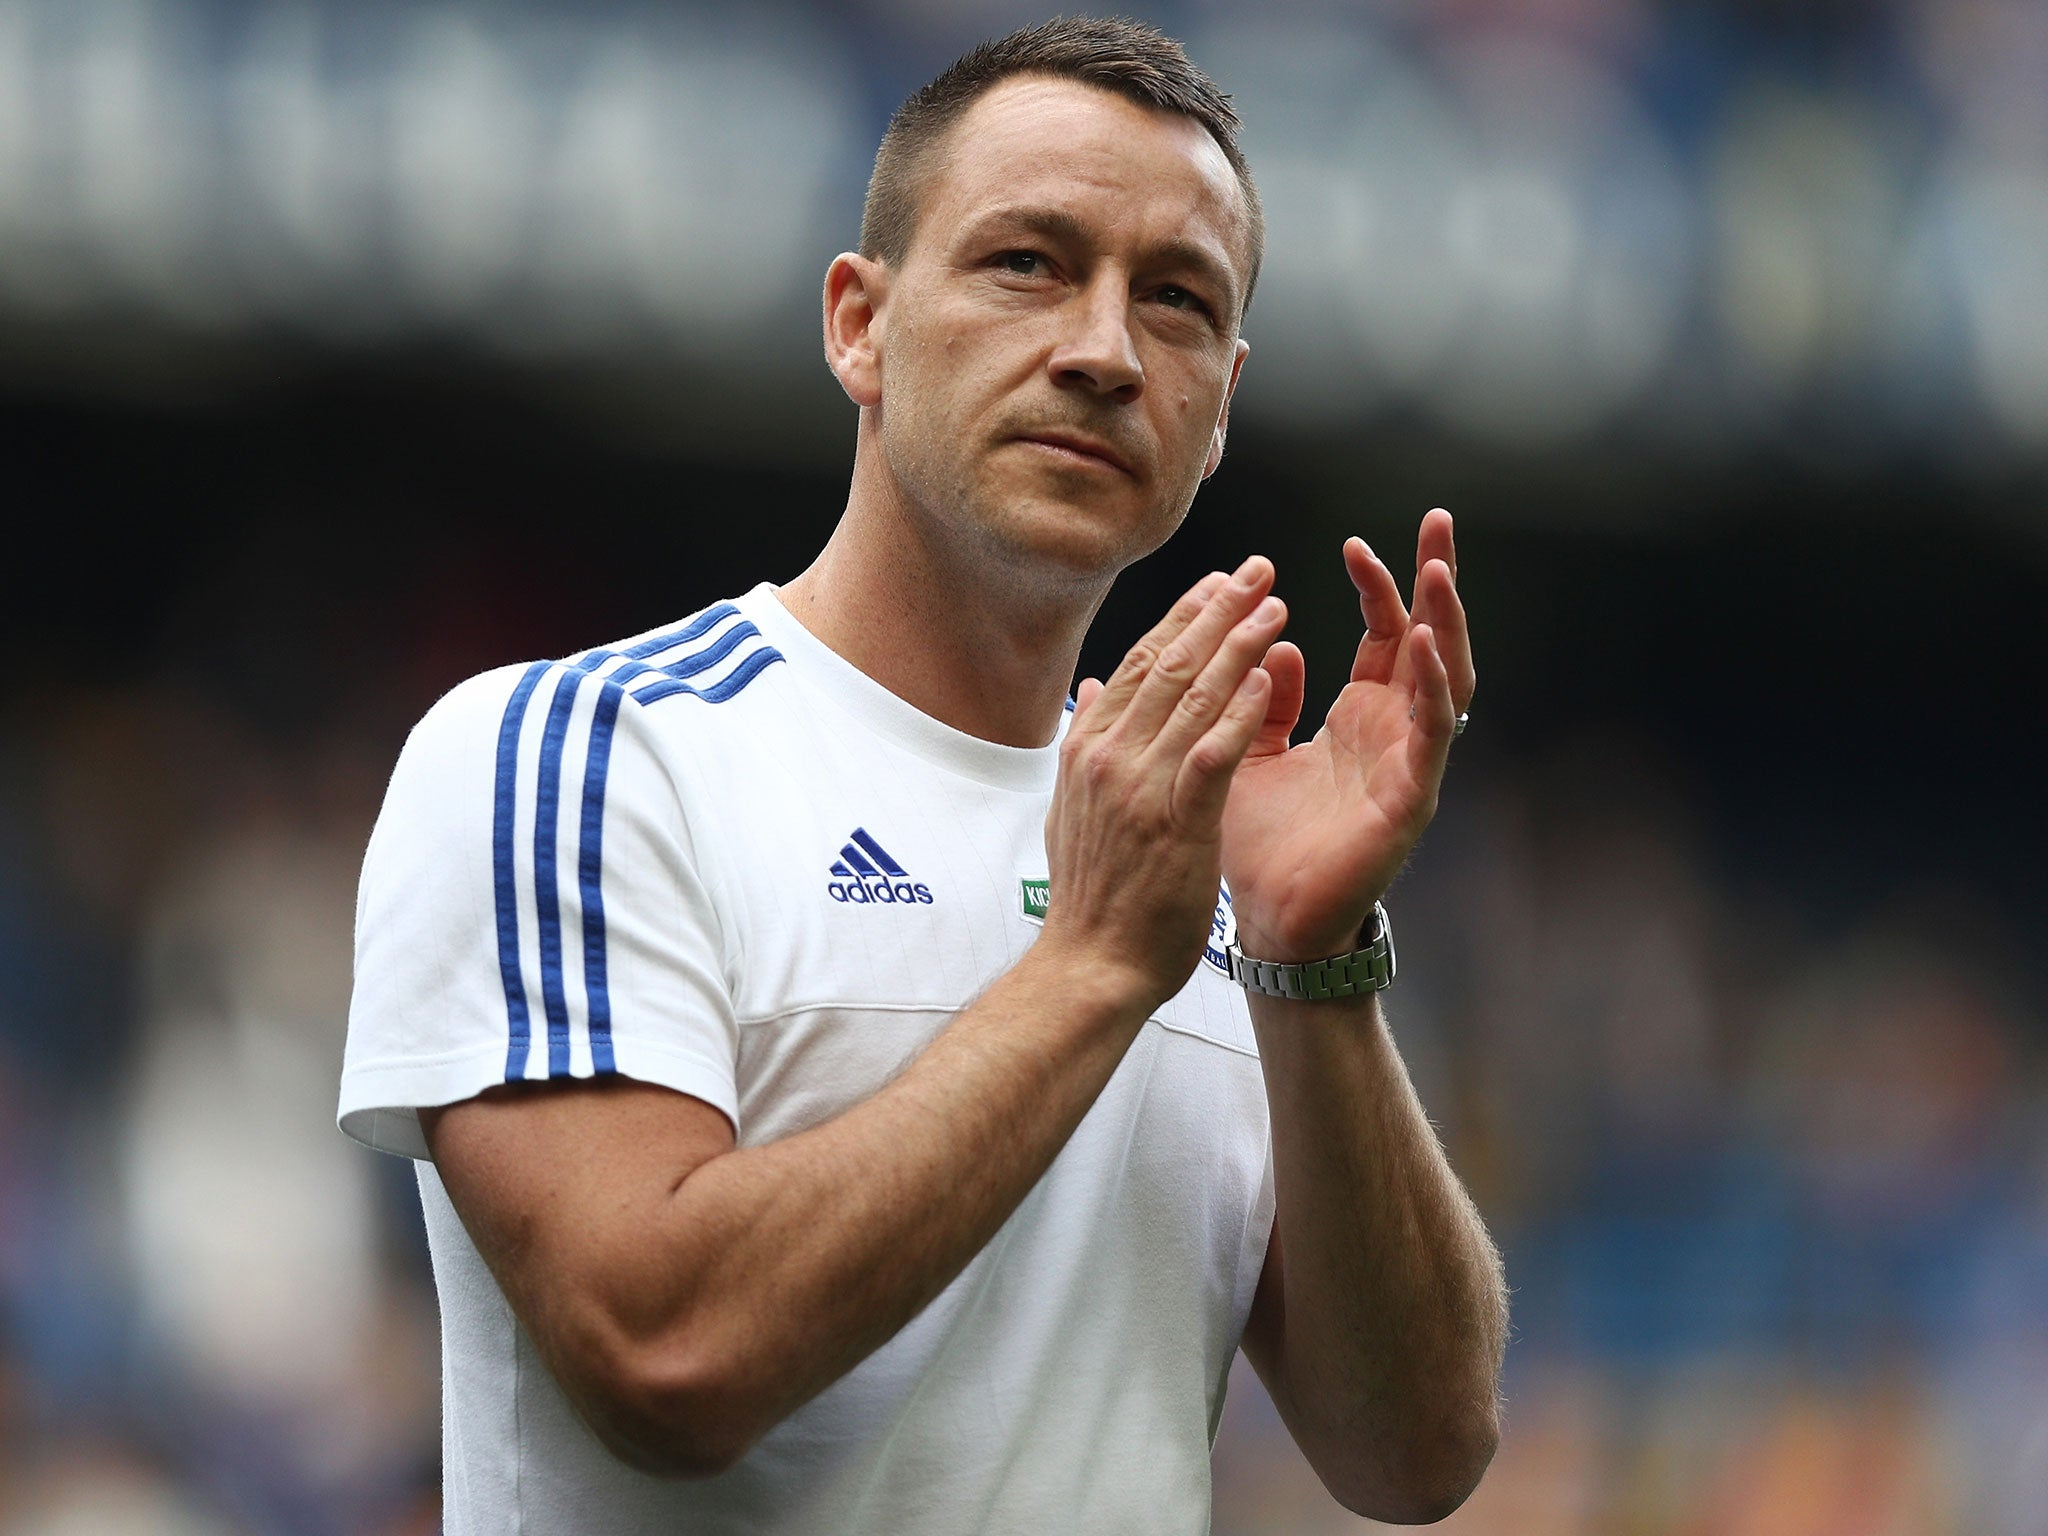 John Terry to leave Chelsea at the end of the season as he will